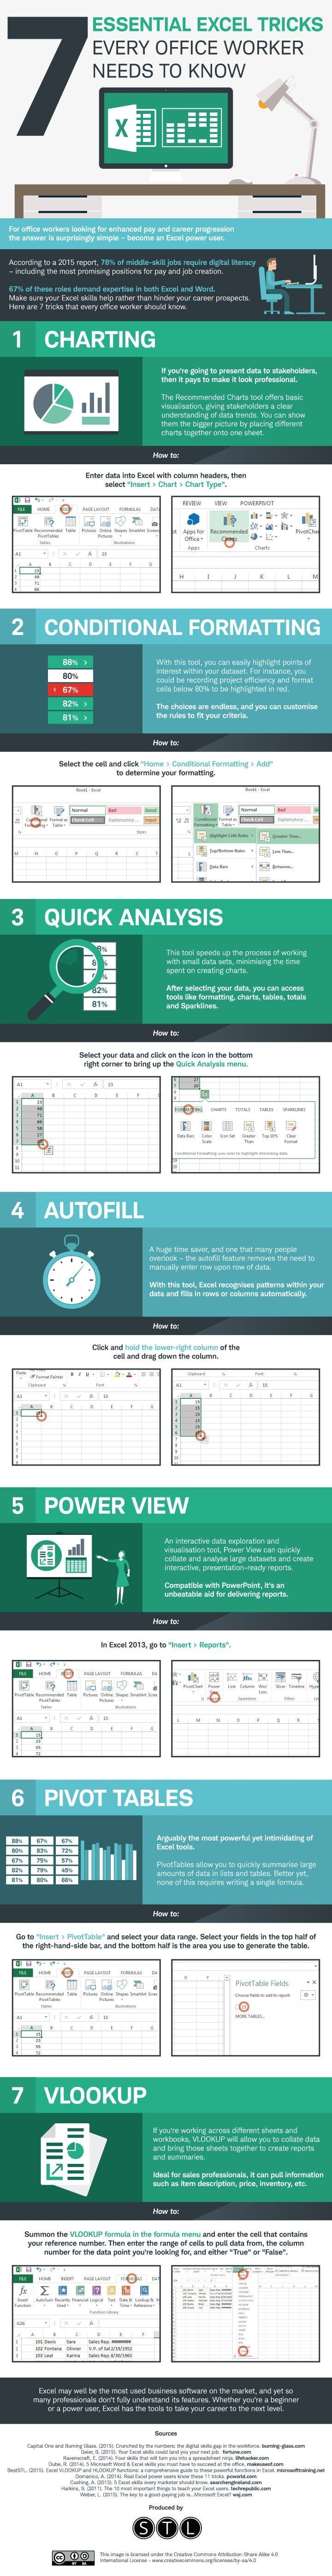 7 Essential Excel Tricks Every Office Worker Should Know - #infographic